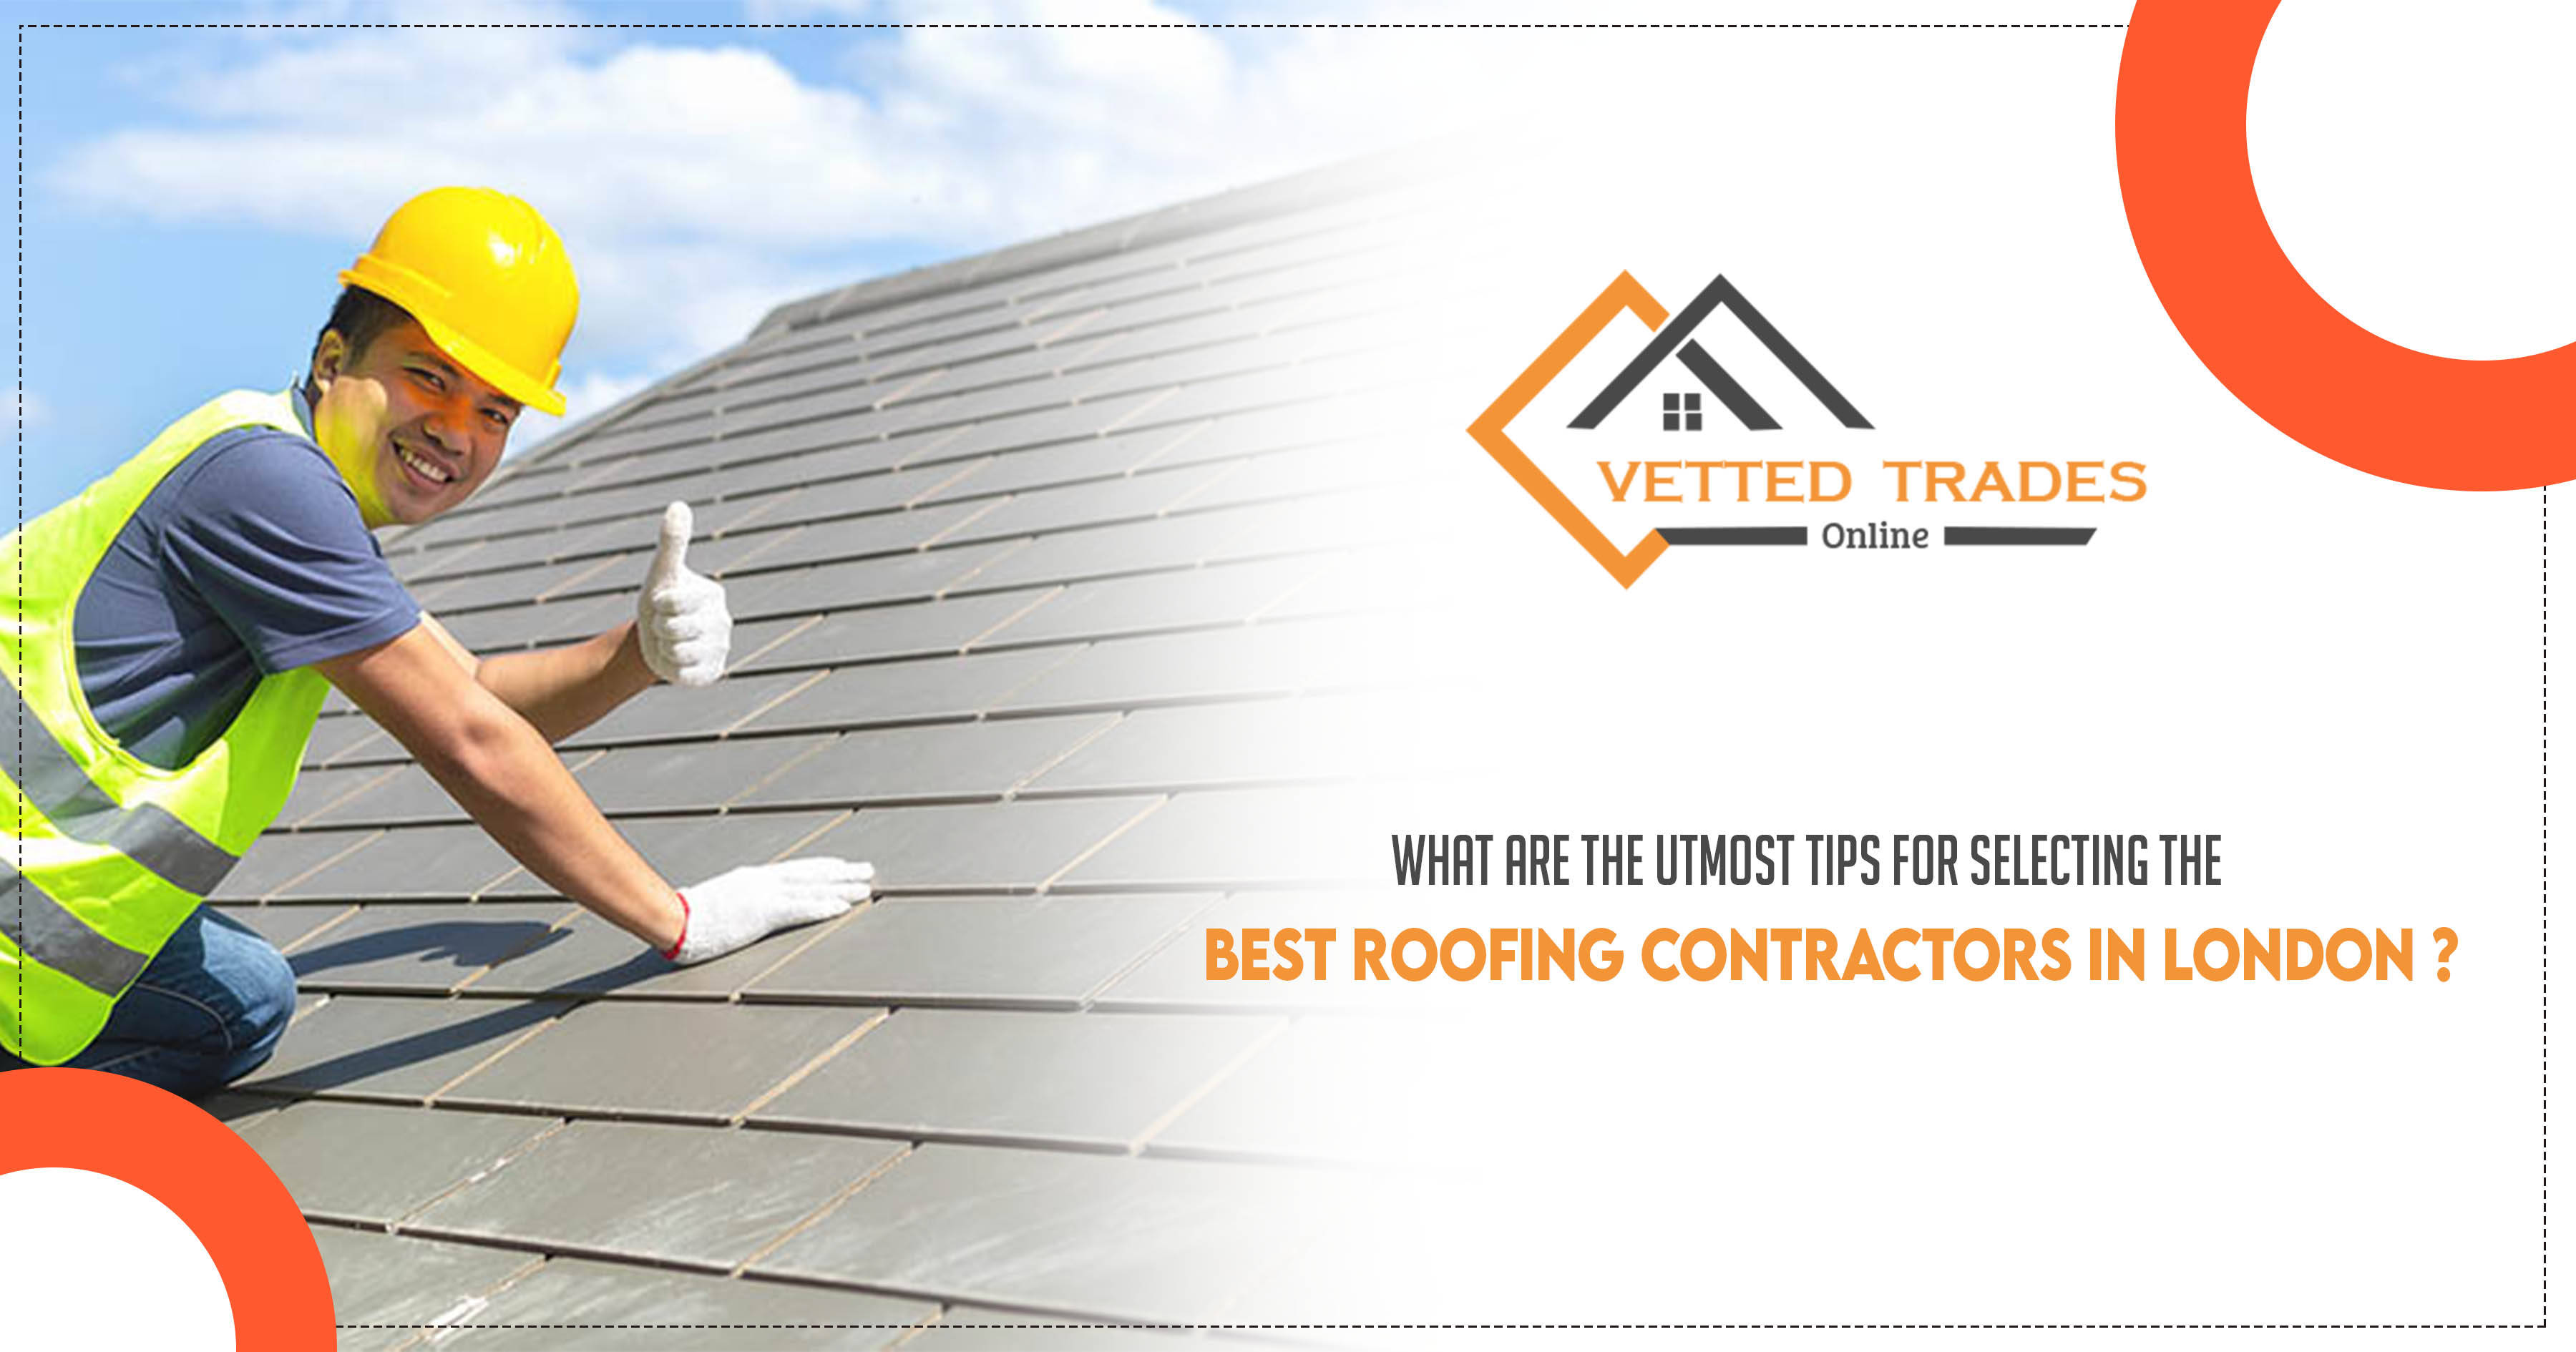 What are the utmost tips for selecting the best roofing contractors in London?